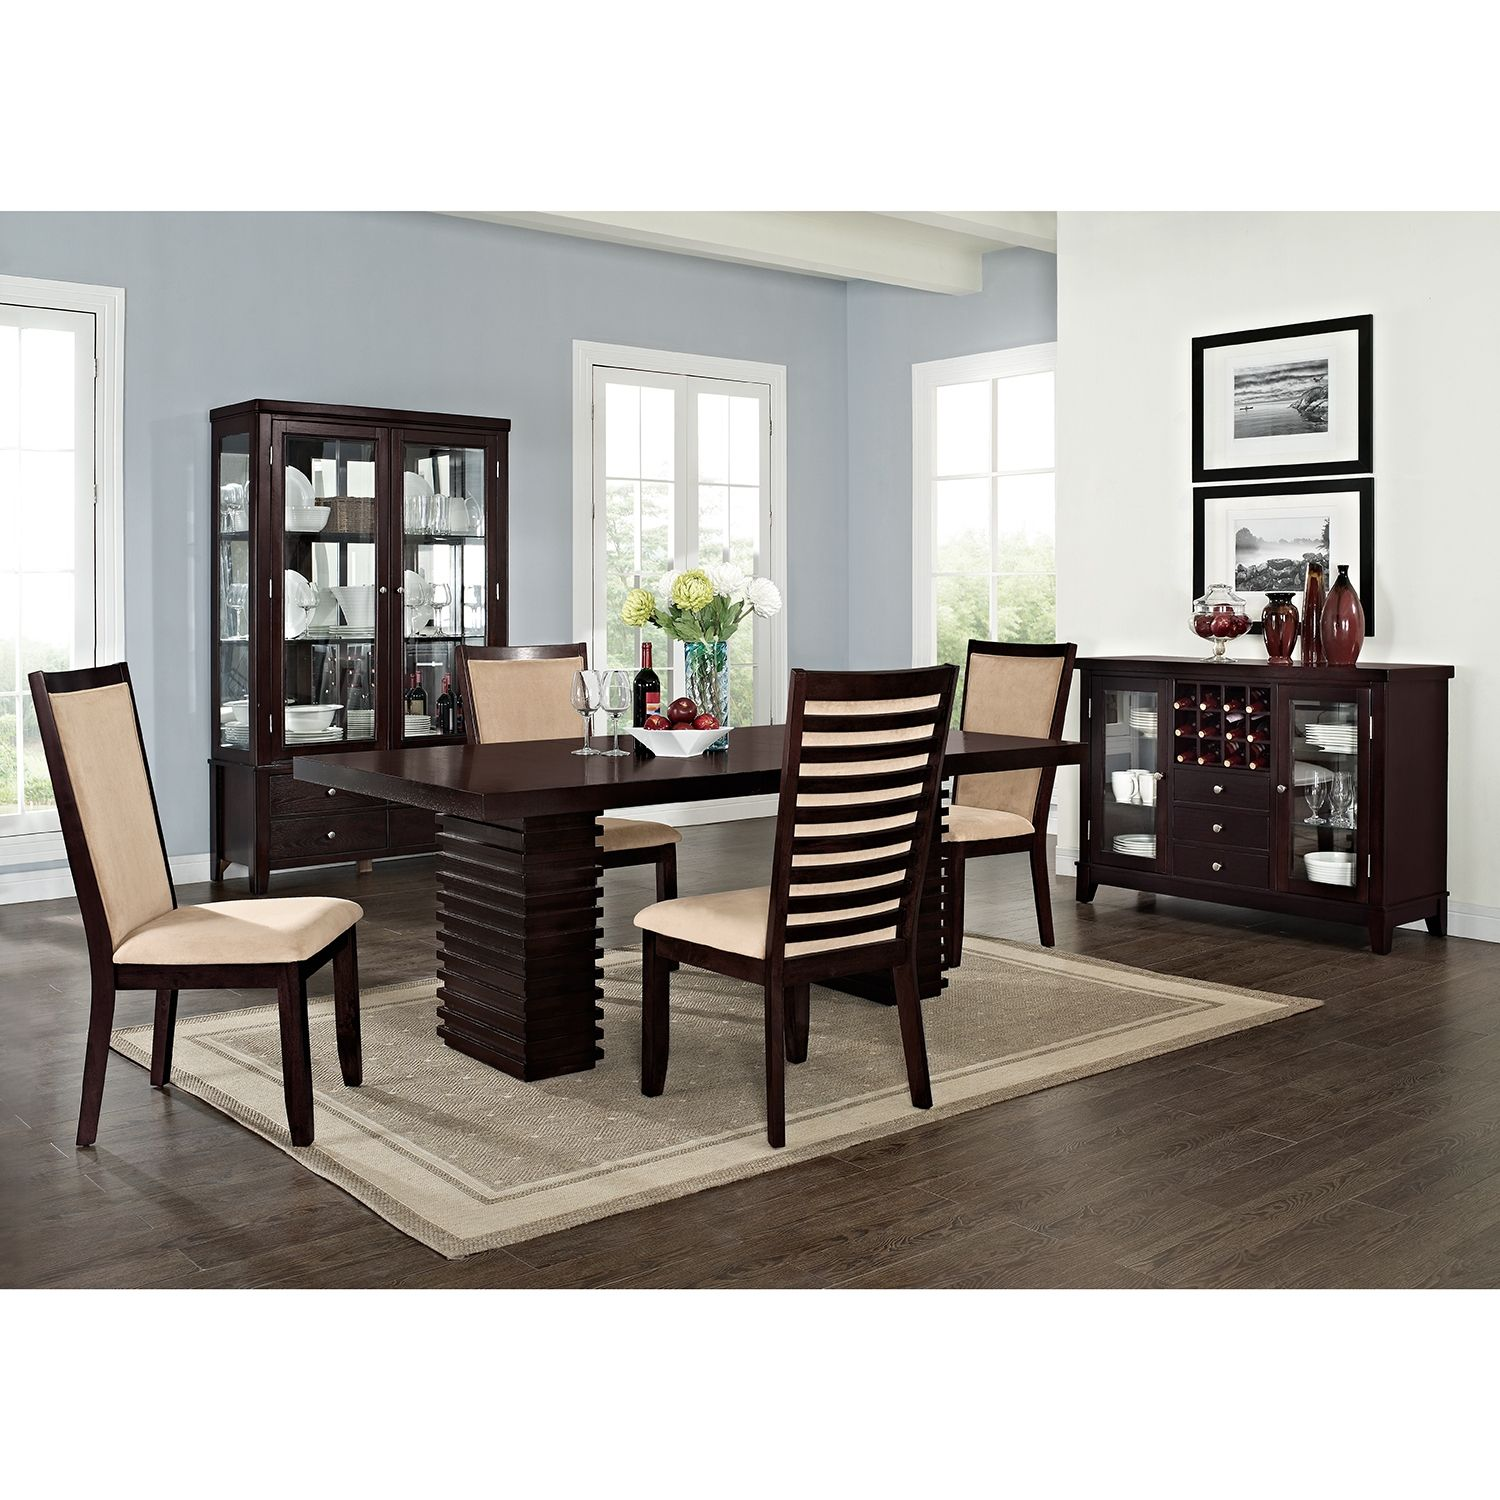 paragon dining room dining table - value city furniture 339.99